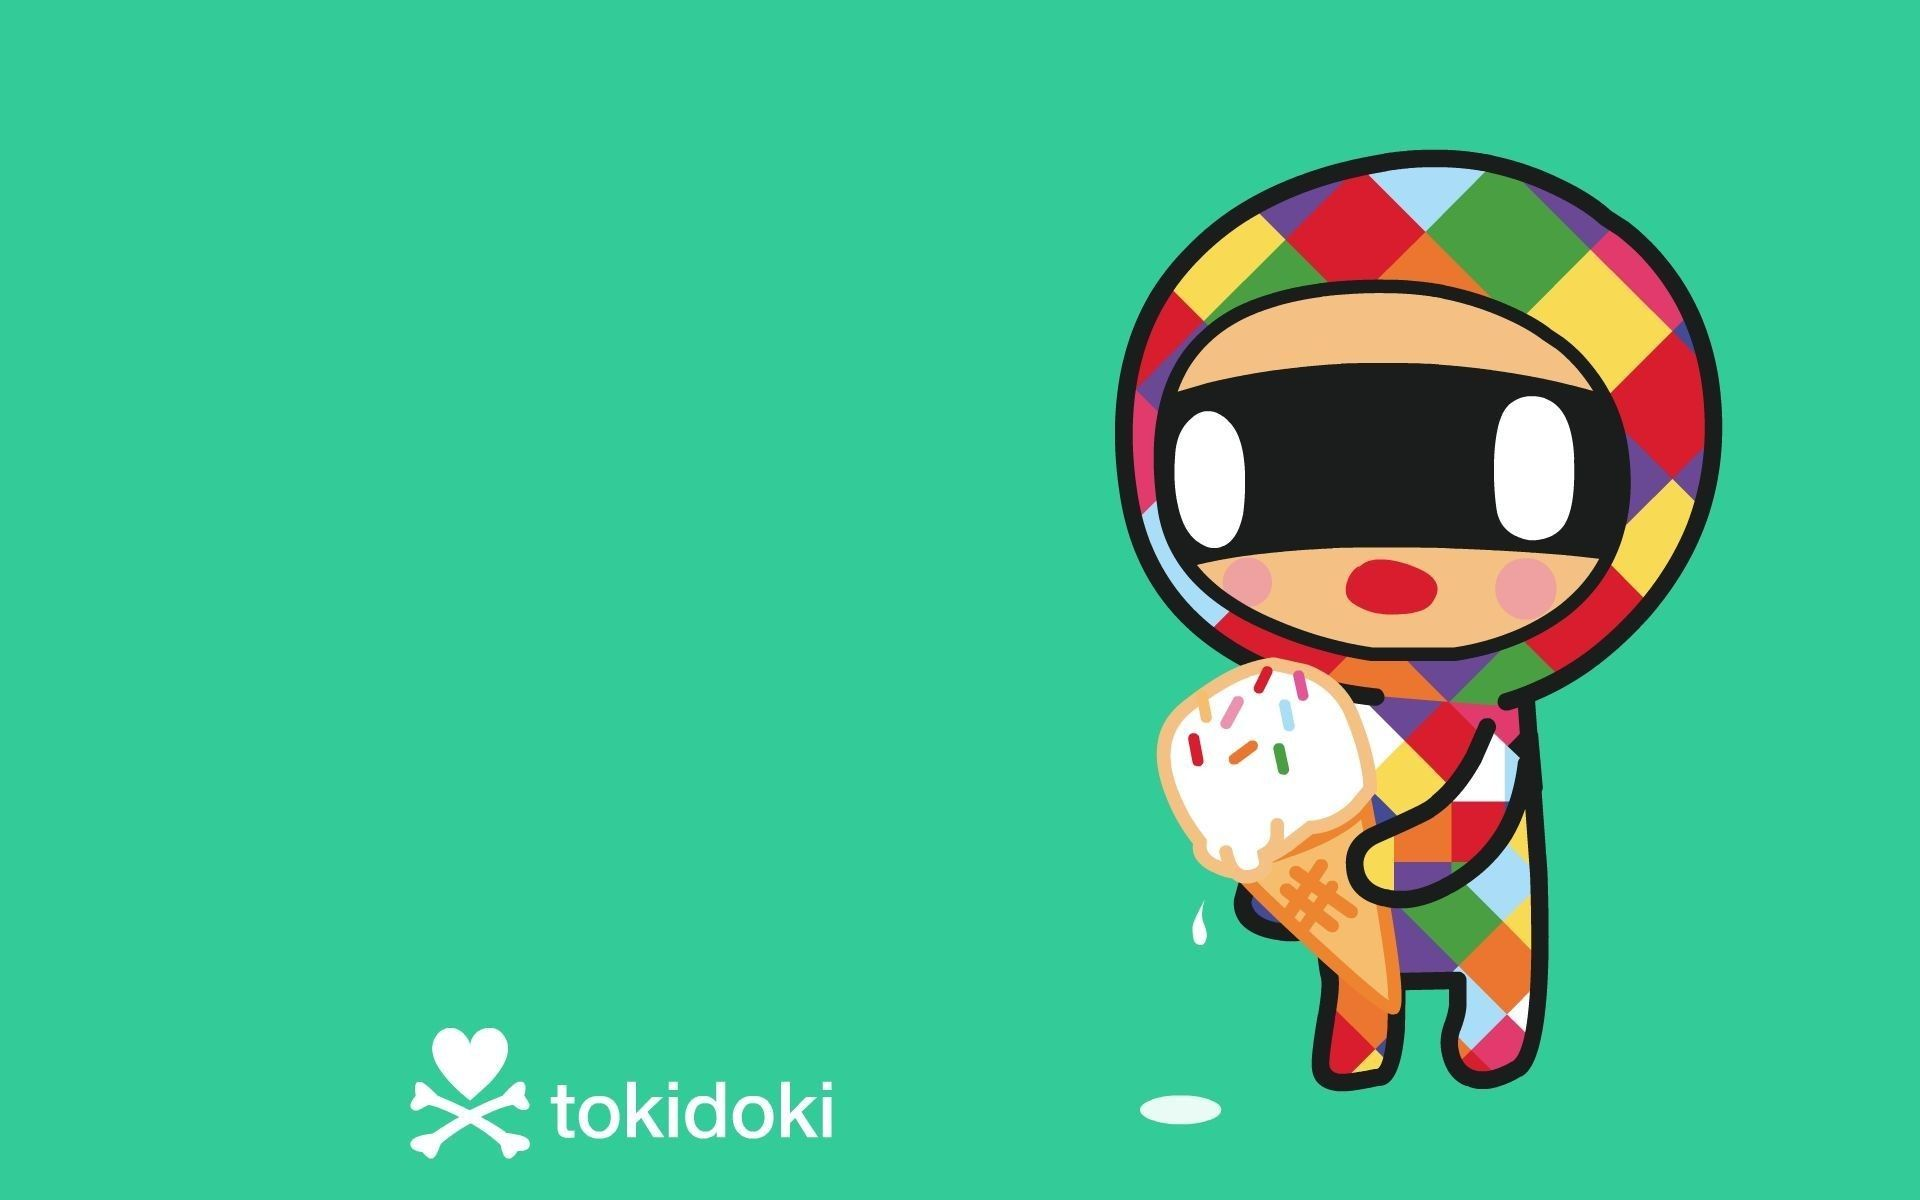 1920x1200 Tokidoki Desktop Wallpaper (54+ images)